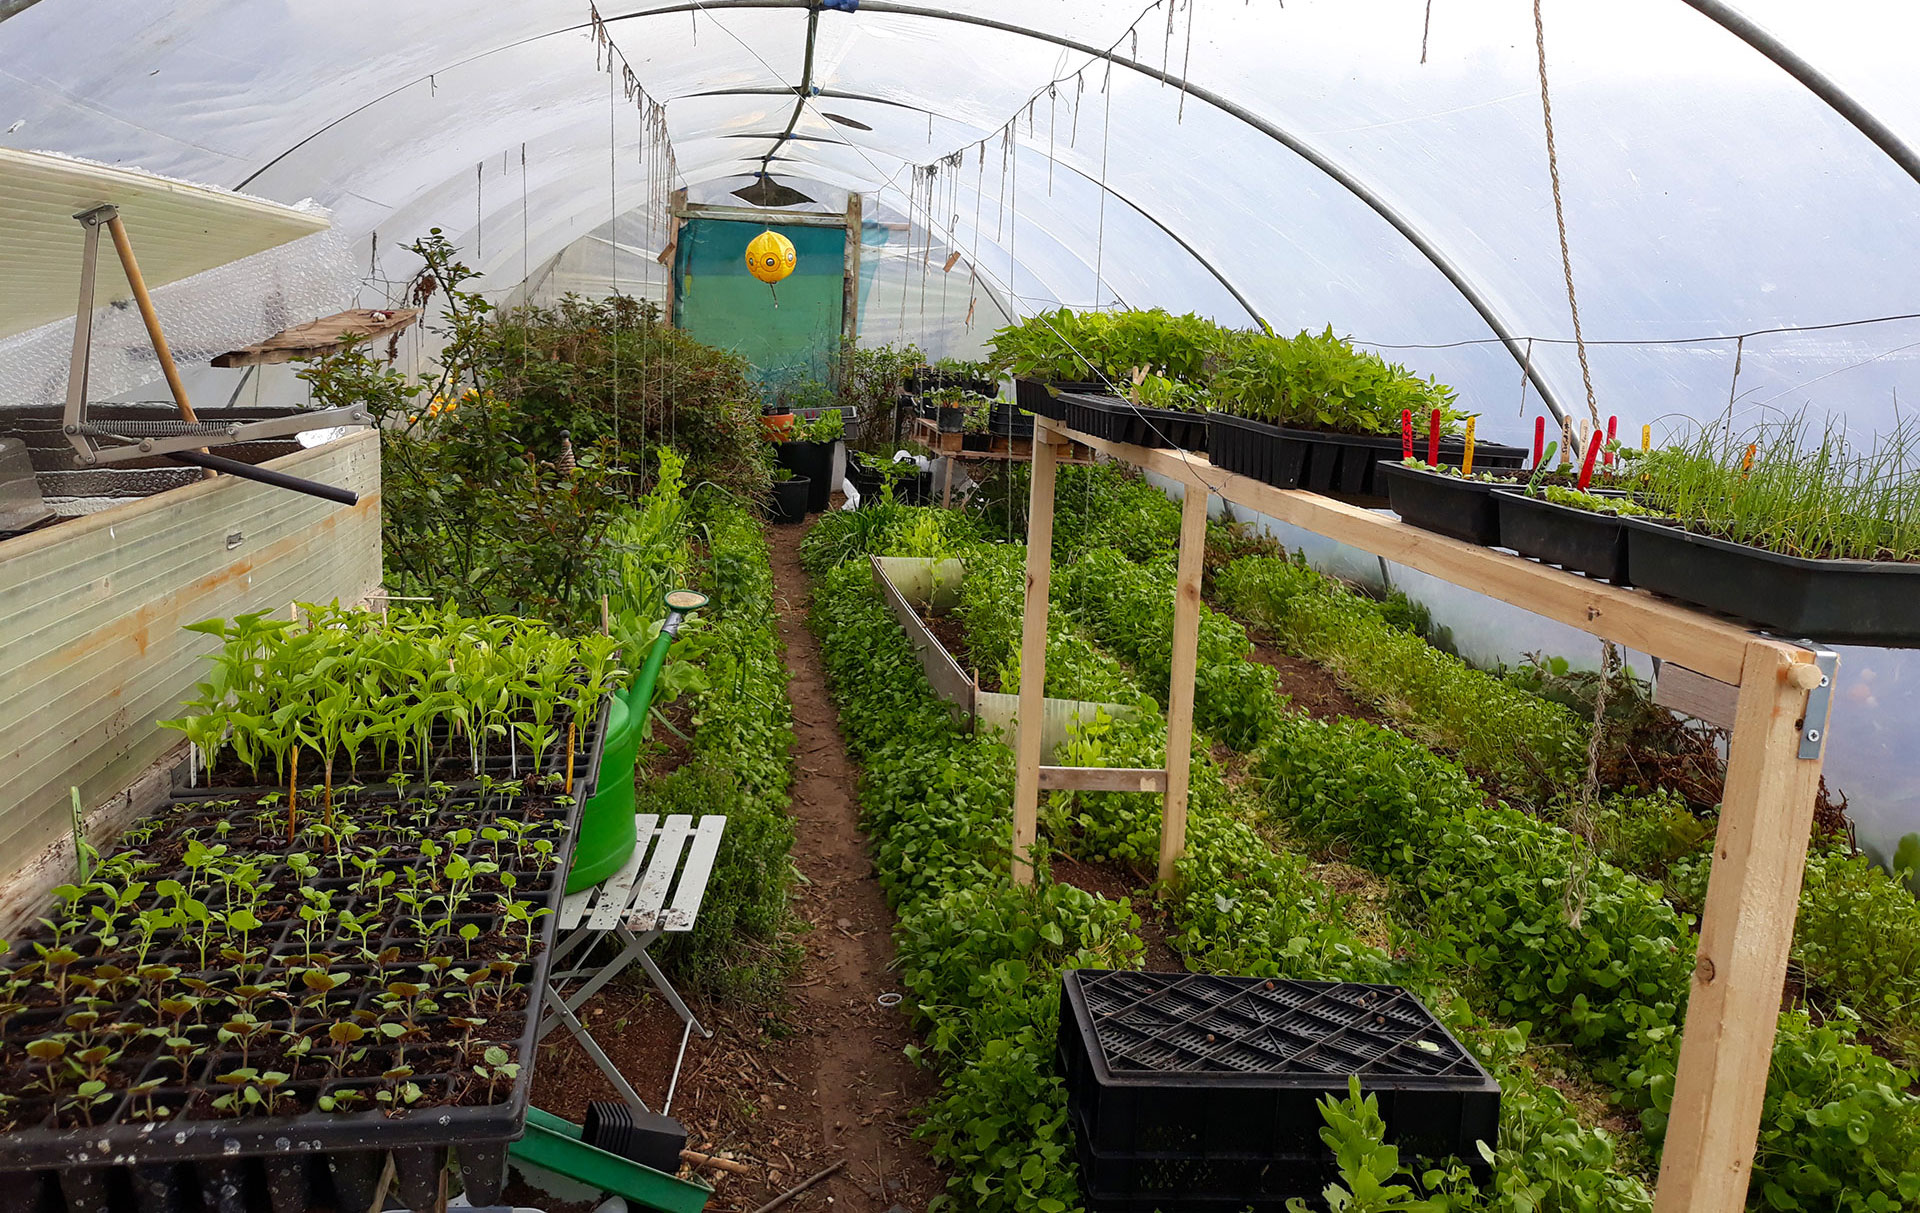 Learn to use a polytunnel at Produce from our Polytunnel courses at Dunmore Country School